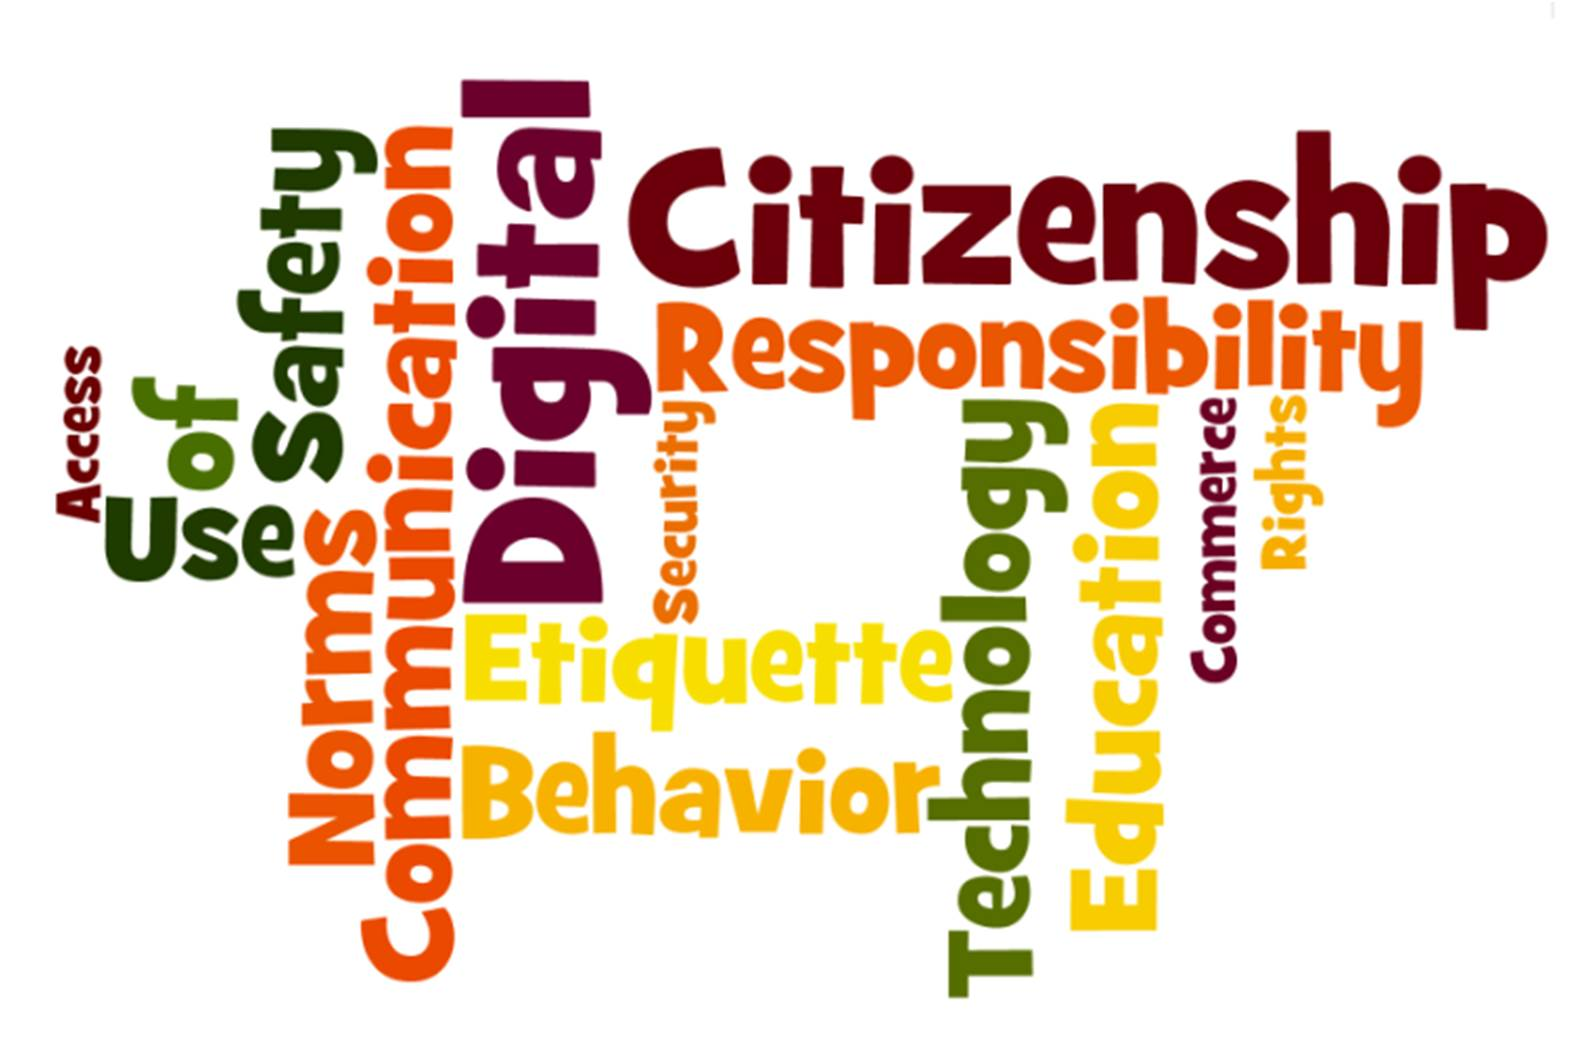 Teaching Digital Citizenship Education - 123ICT 123ICT